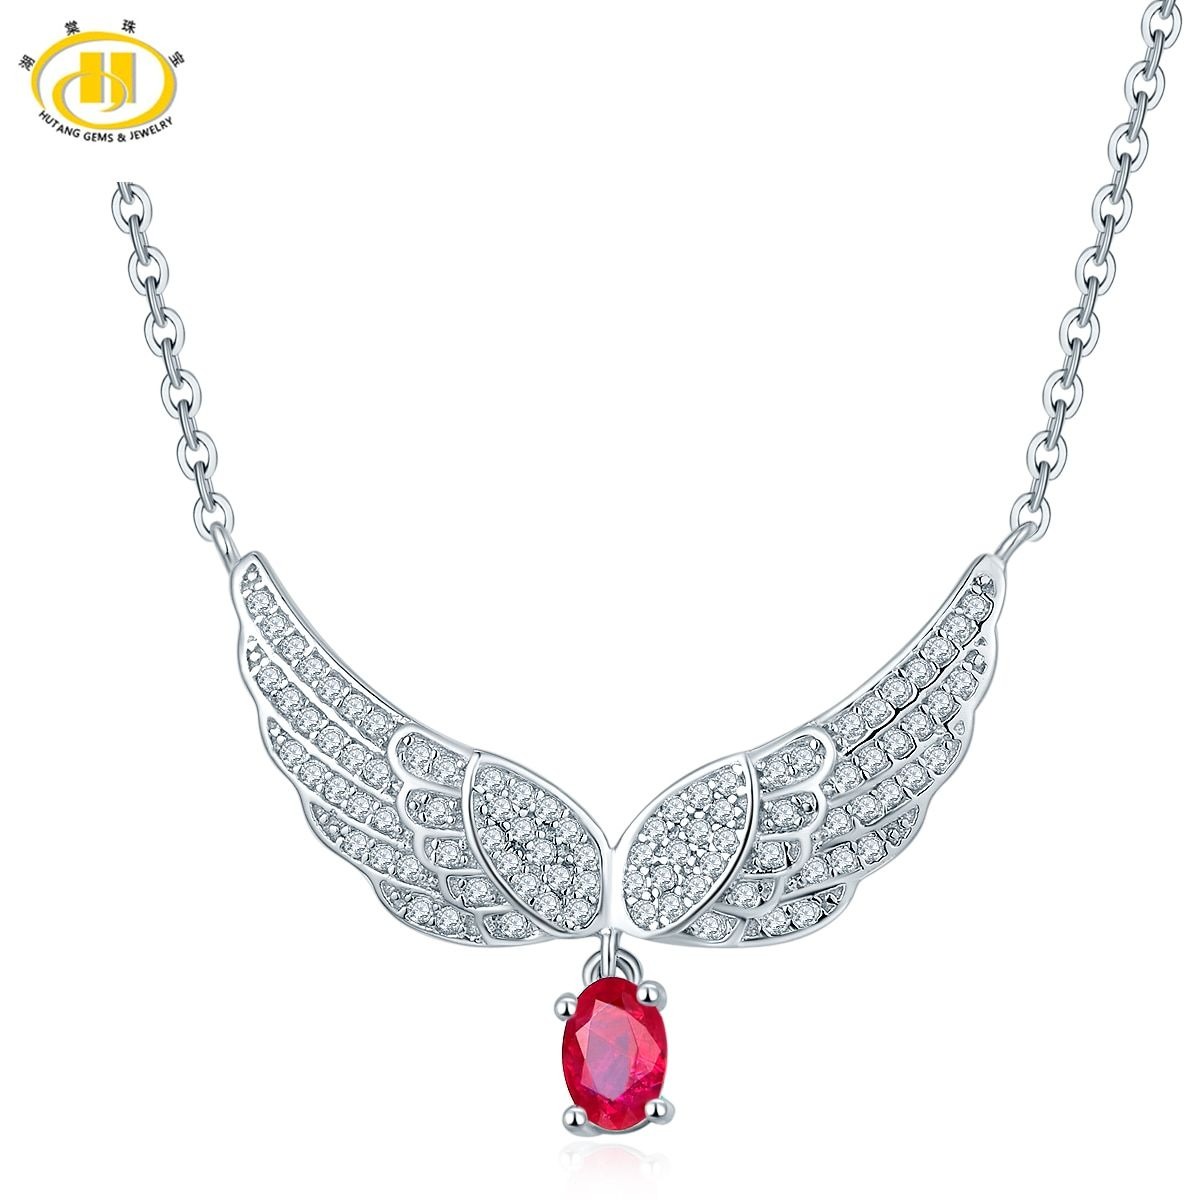 Hutang Classic 3/7ct Natural Precious Ruby Wing Pendant Necklace Gemstone Fine Jewelry Wedding Necklaces for Women Gift